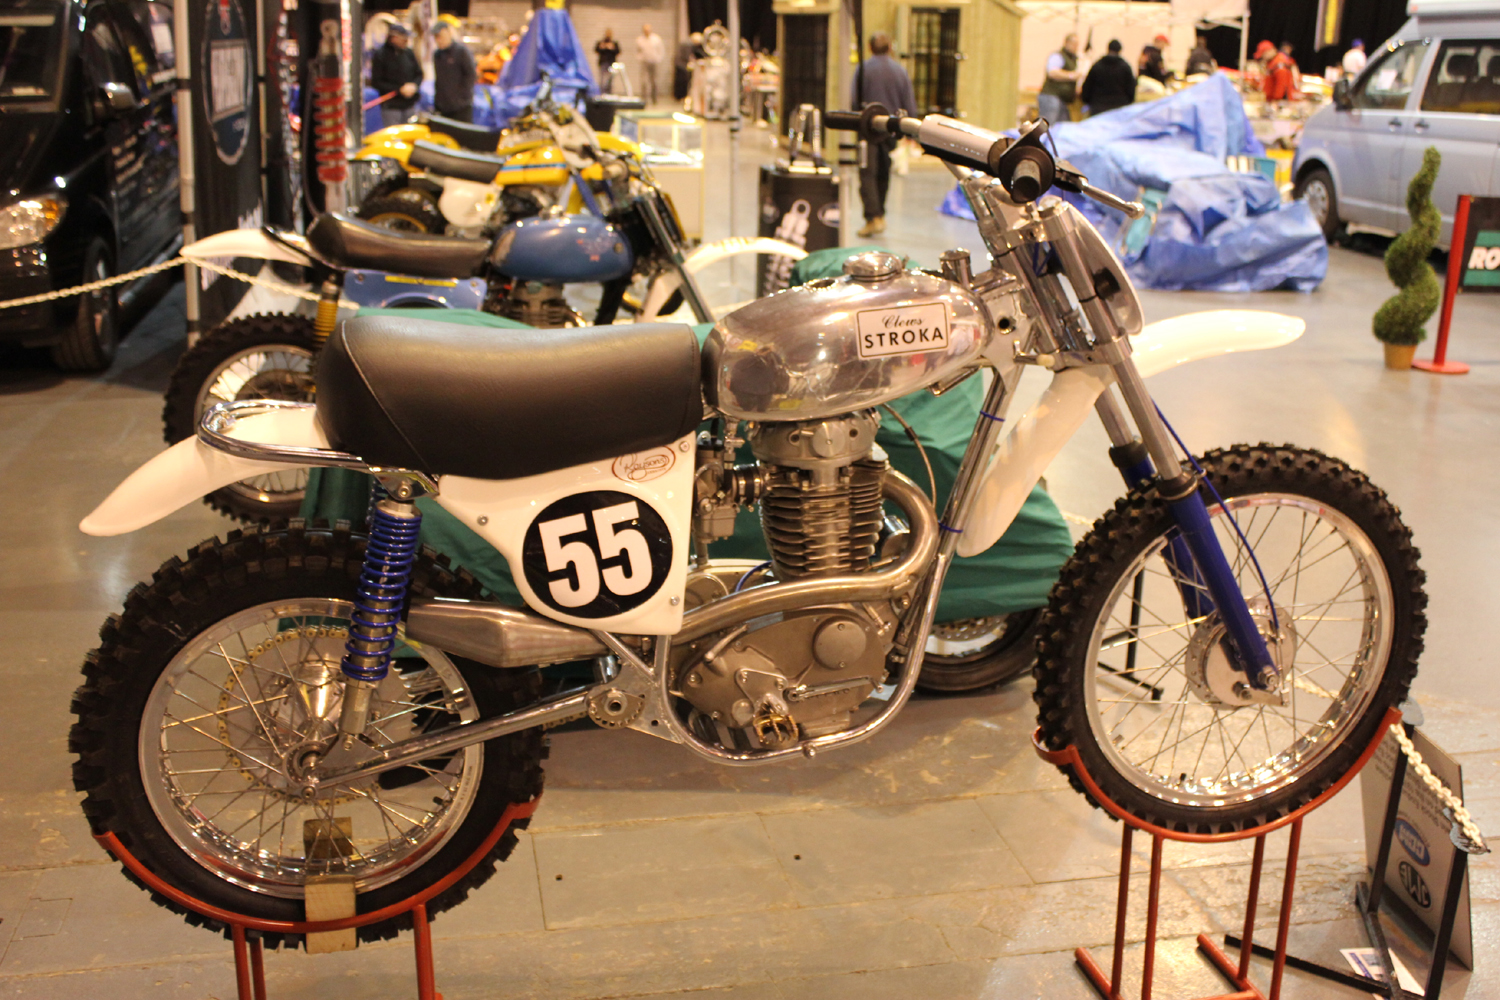 classicdirtbikerider.com-photo by Mr J-2015 Telford classic dirt bike show-CLEWS STROKA CLASSIC SCRAMBLER